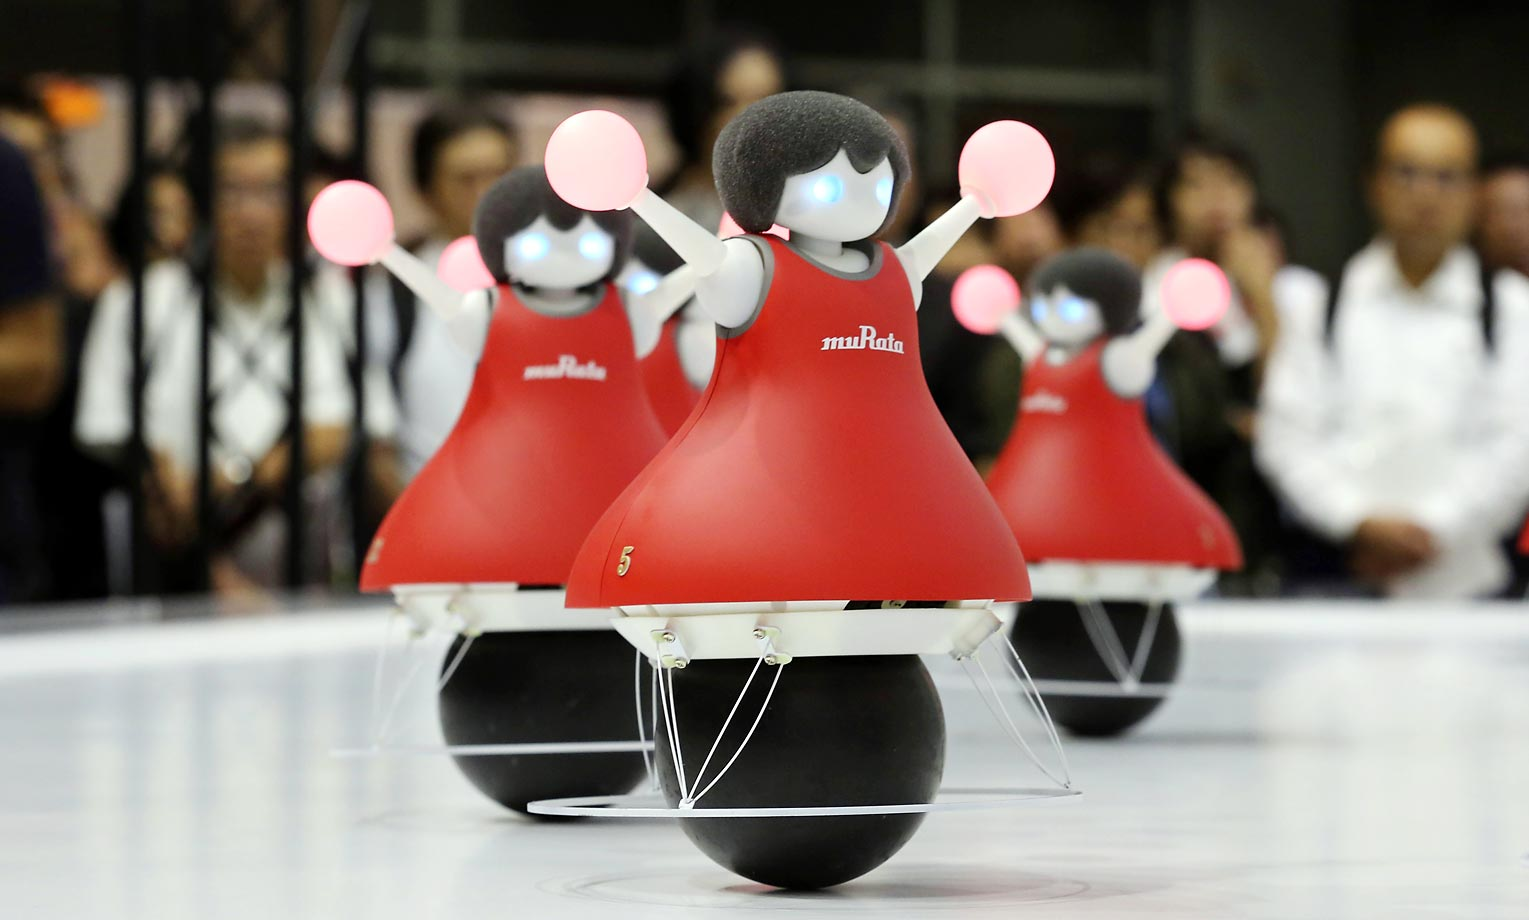 Robot cheerleaders, with color-changing pom-poms, perform synchronized dancing during the annual CEATEC Japan advanced technologies show.